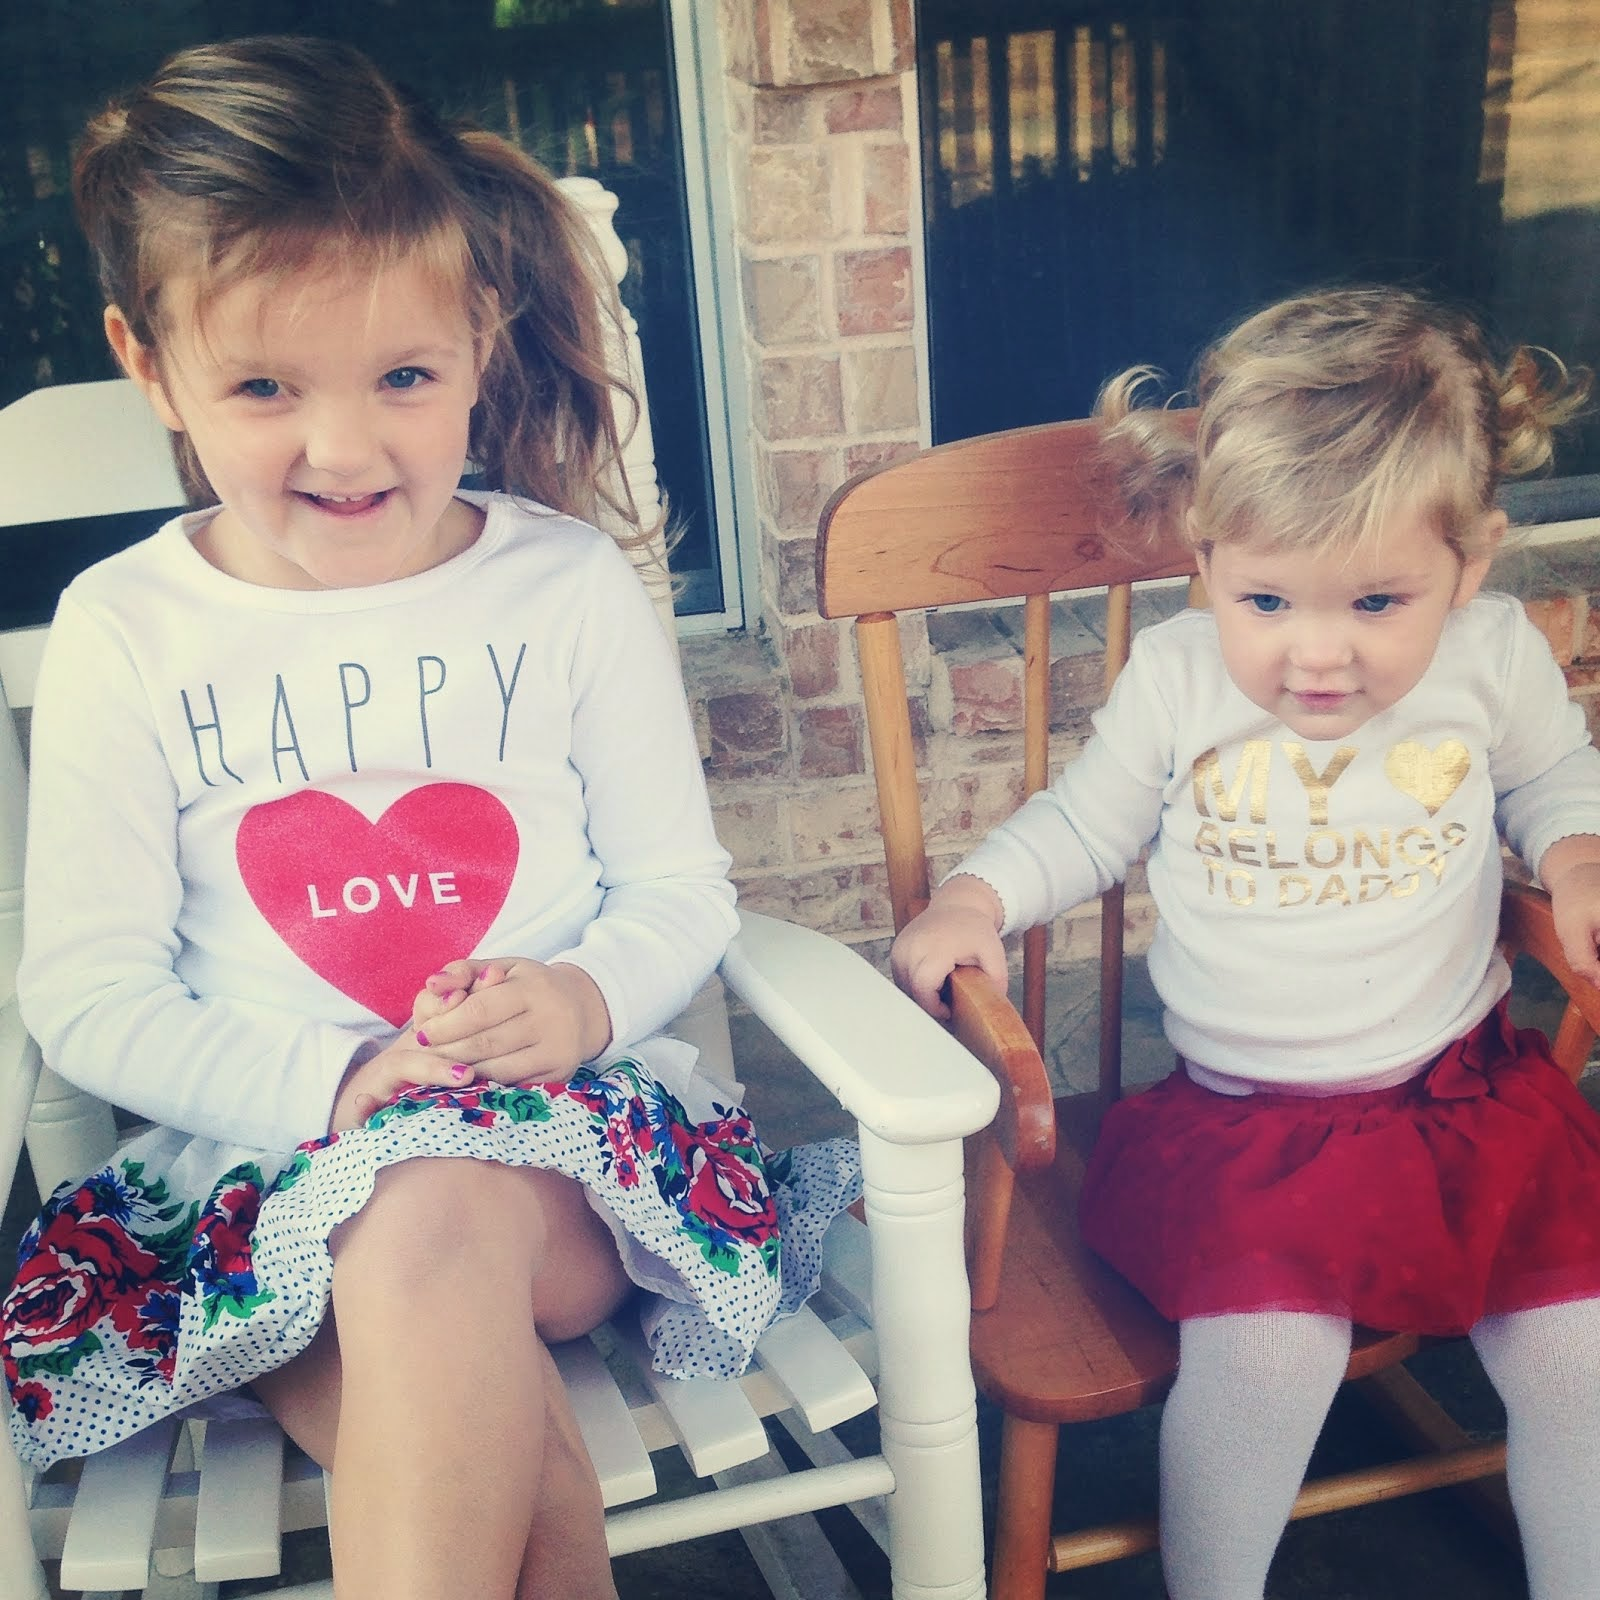 Sweethearts #chapmangirls